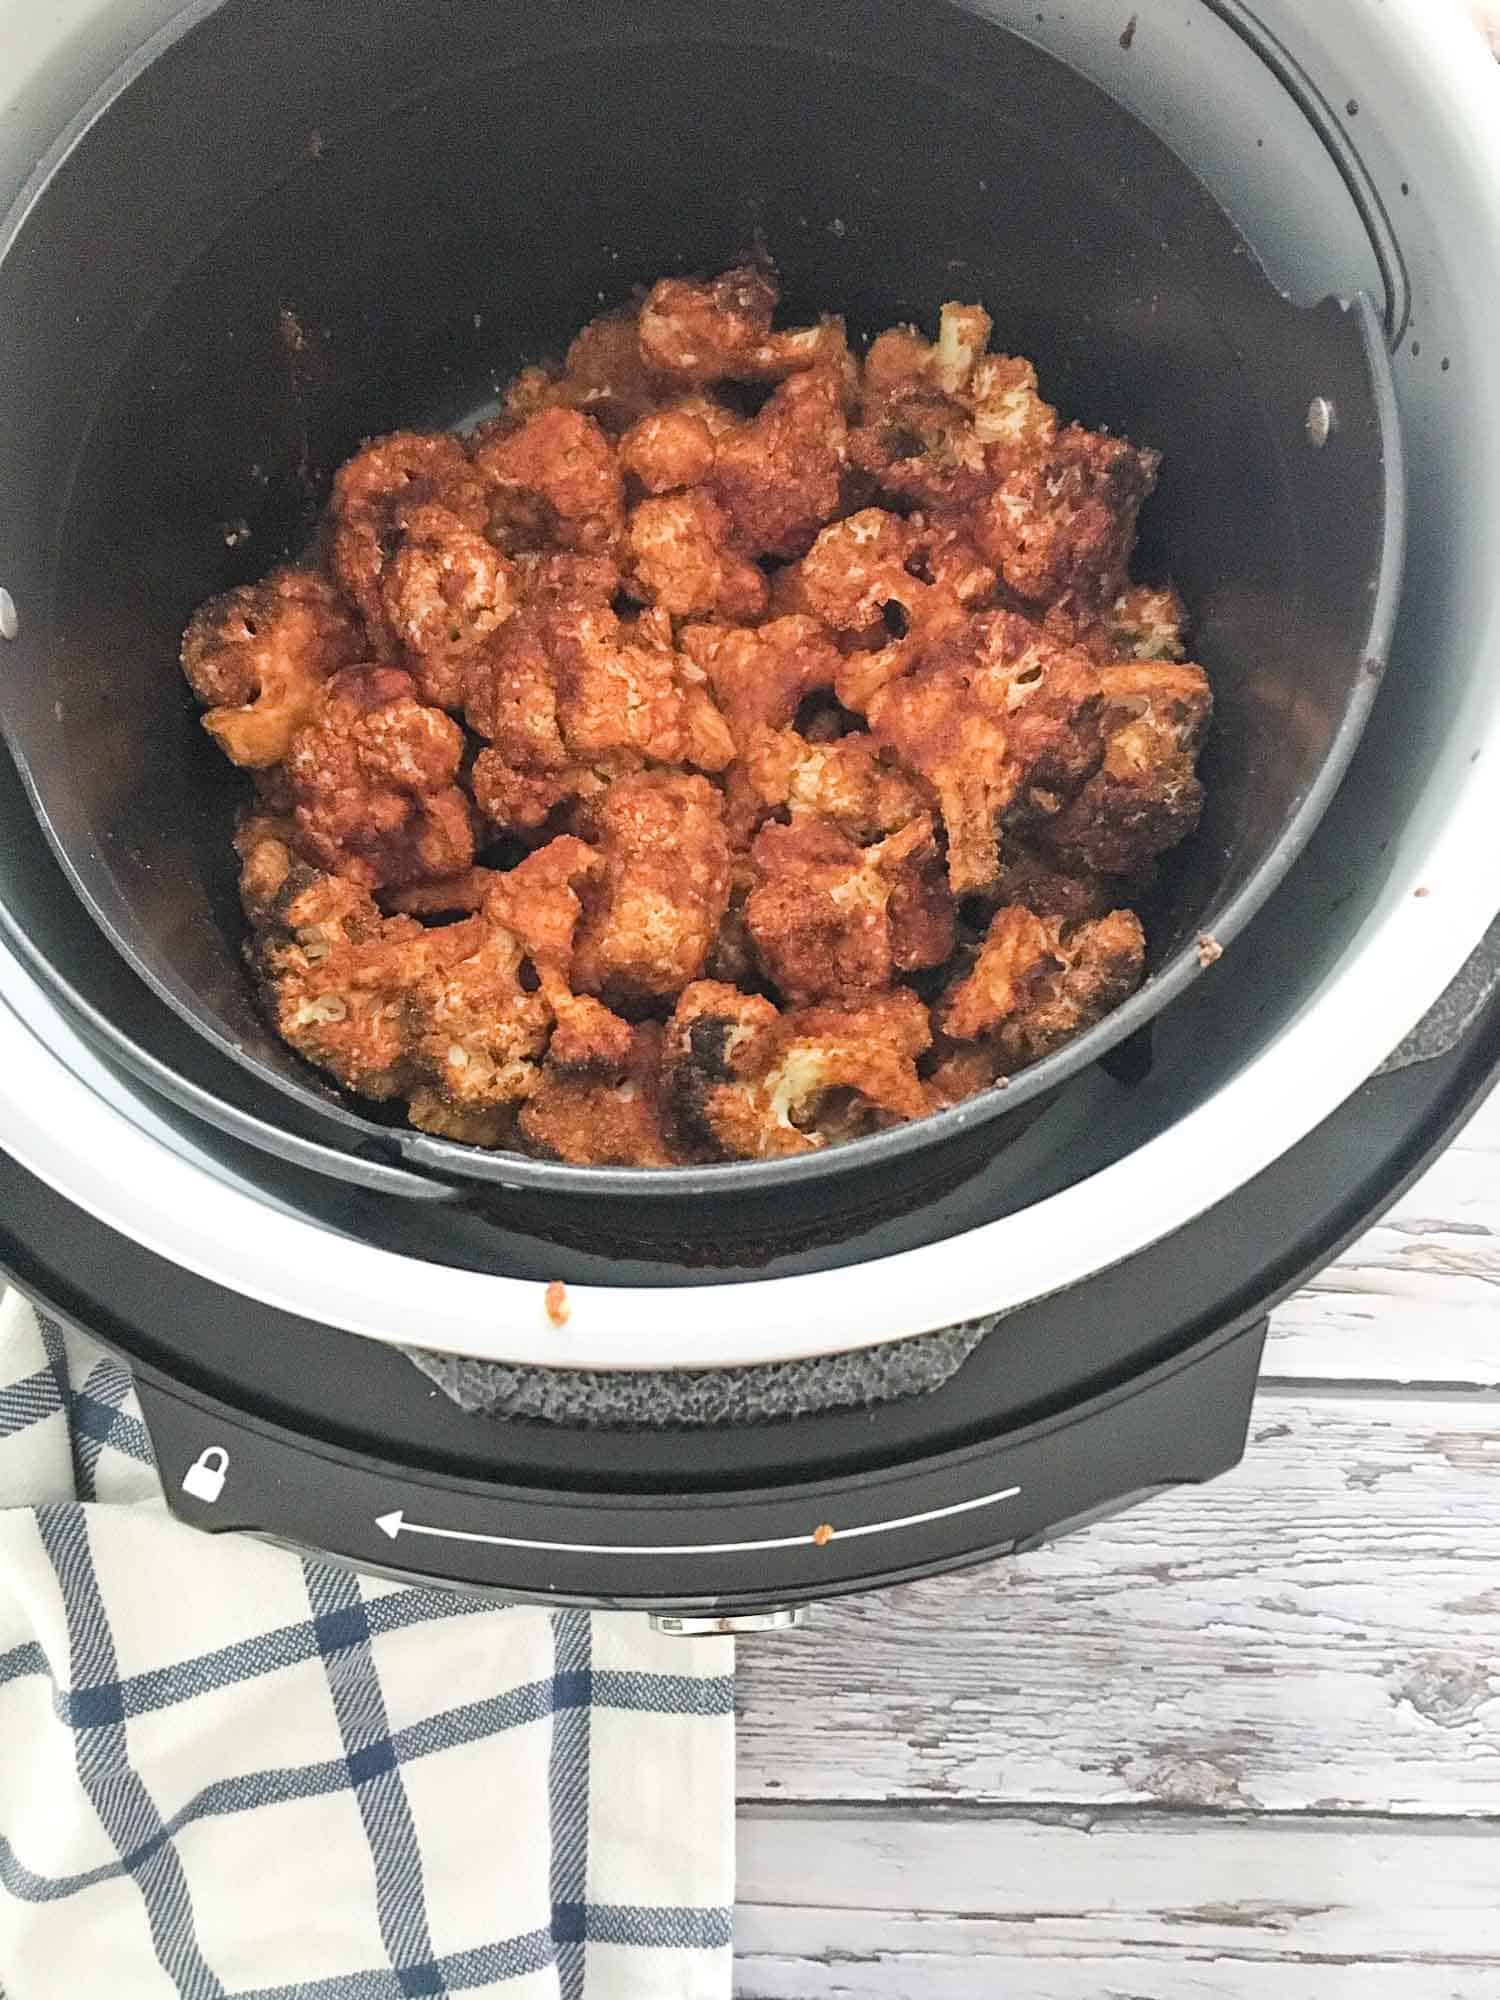 Cooked cauliflower florets that are red and covered in buffalo sauce inside air fryer basket.